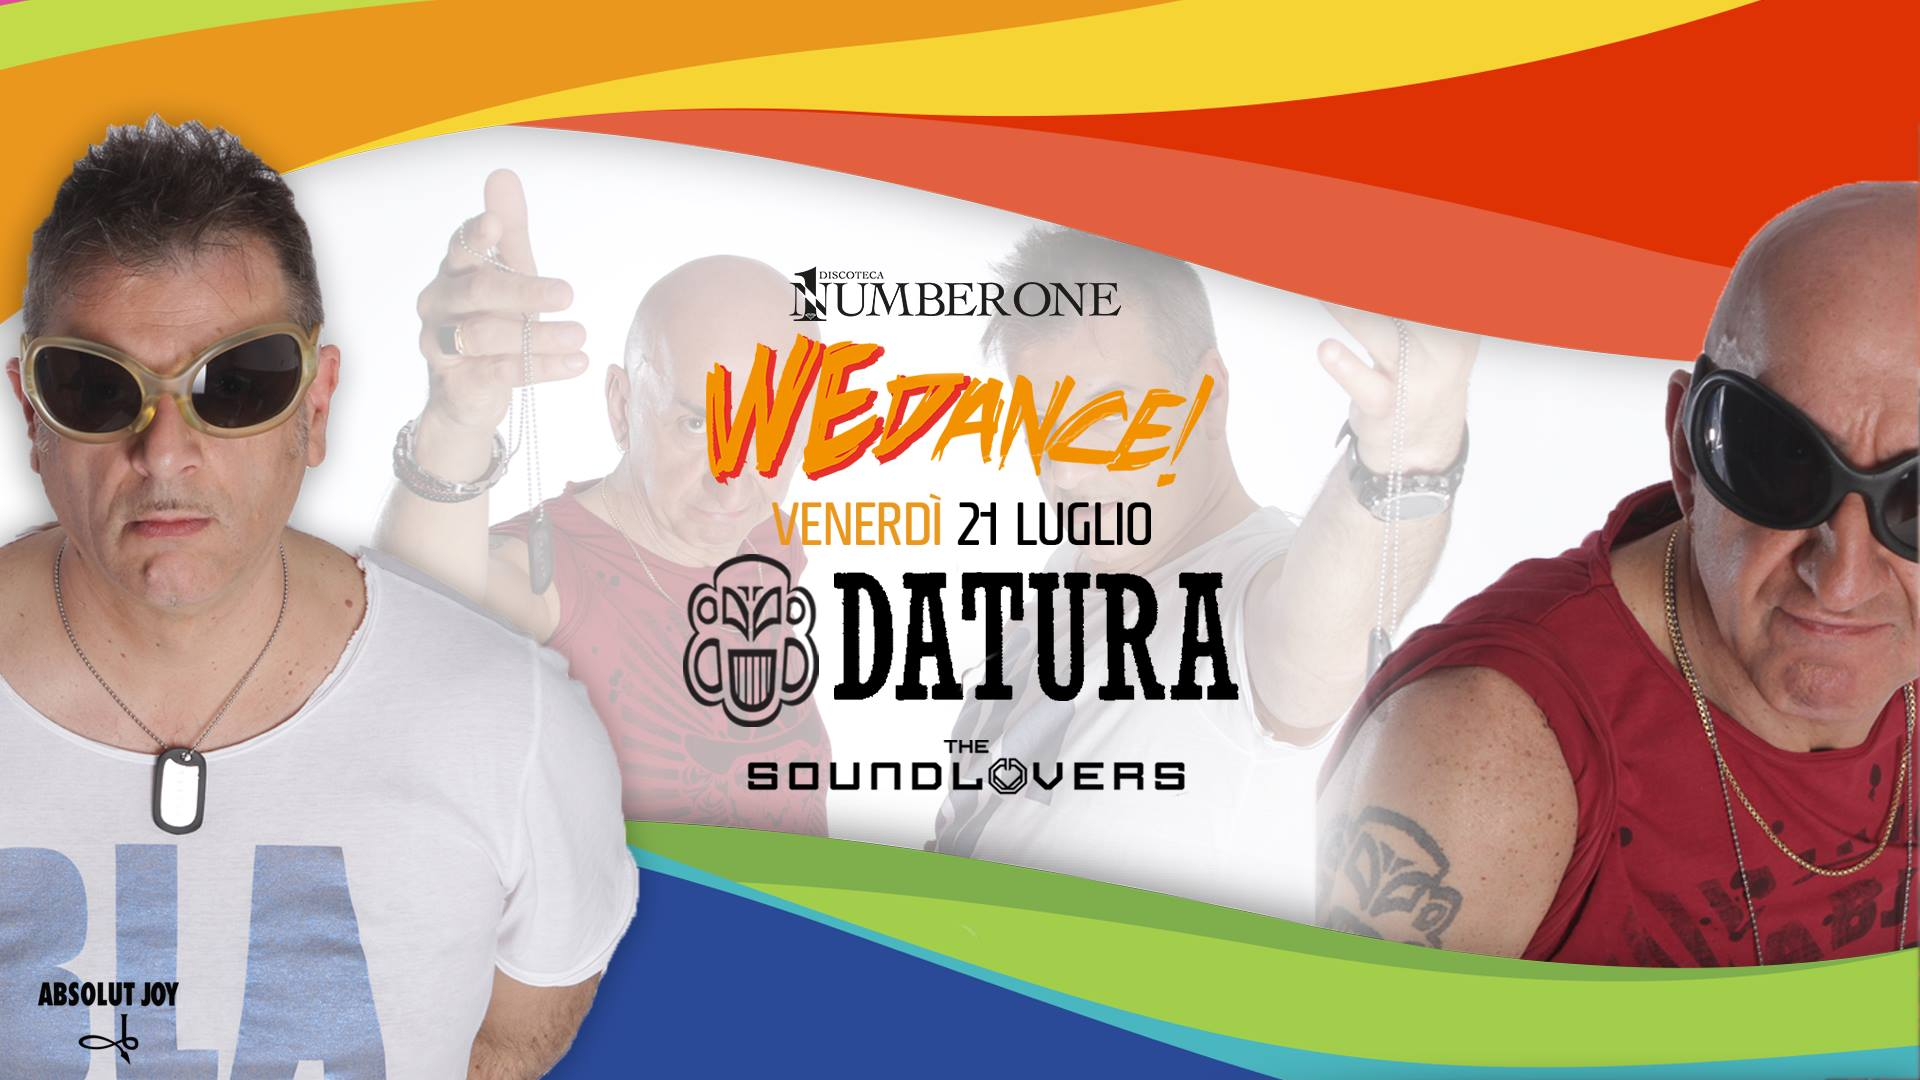 Datura ✦ The Soundlovers ✦ Wedance ✦